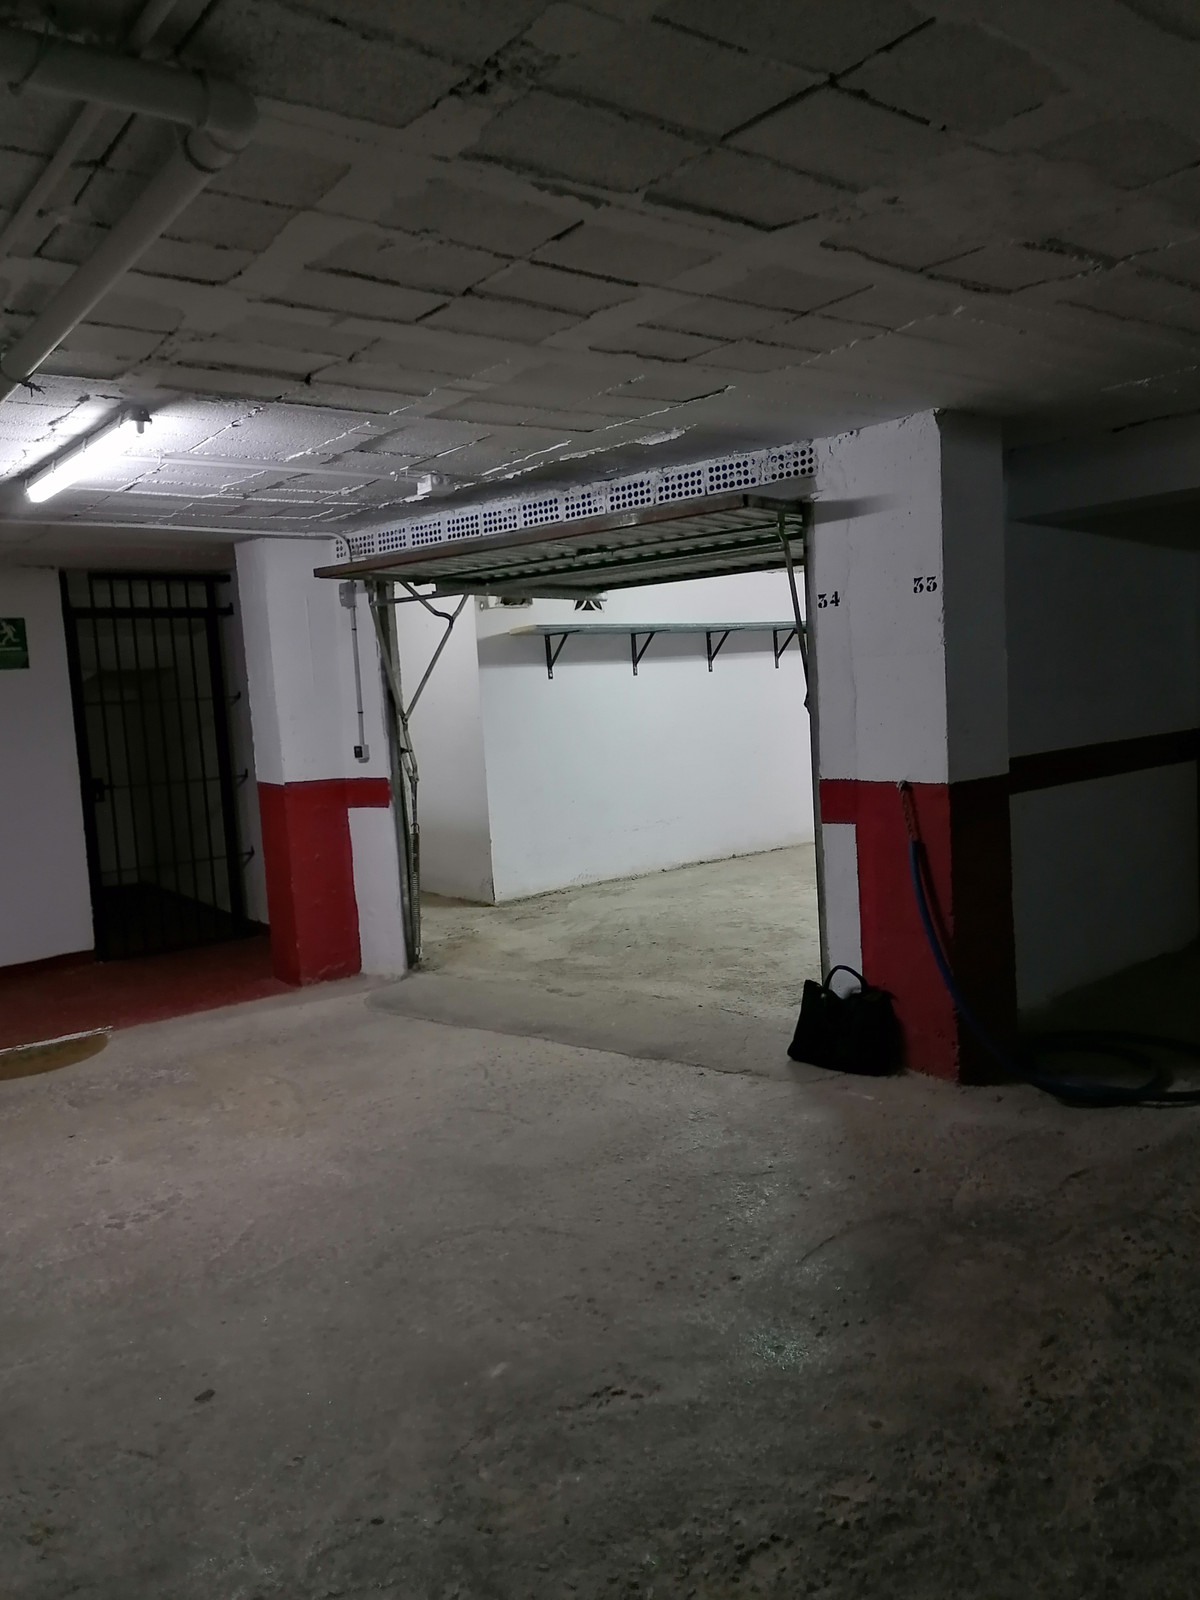 PARKING FOR TWO VEHICLES ONLINE, CLOSED GARAGE BOX TYPE IN URBANIZATION GARAGE WITH LARGE ACCESS STR, Spain